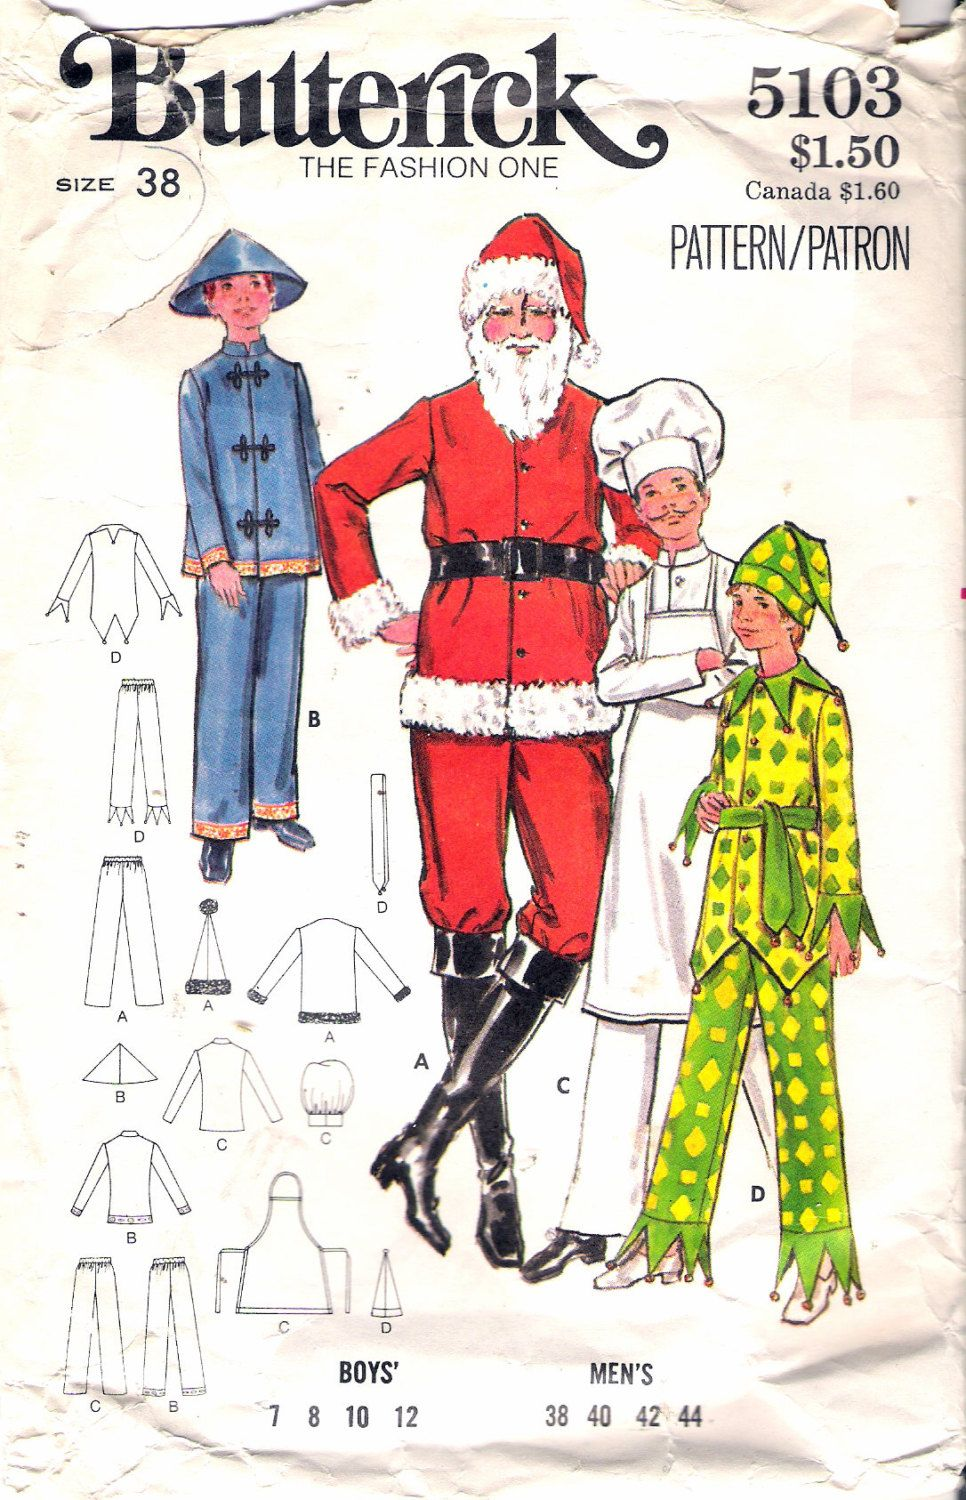 Vintage 1970s butterick 5103 boys costumes santa chinese man vintage 1970s butterick 5103 boys costumes santa chinese man chef jester sewing pattern size 38 chest jeuxipadfo Image collections